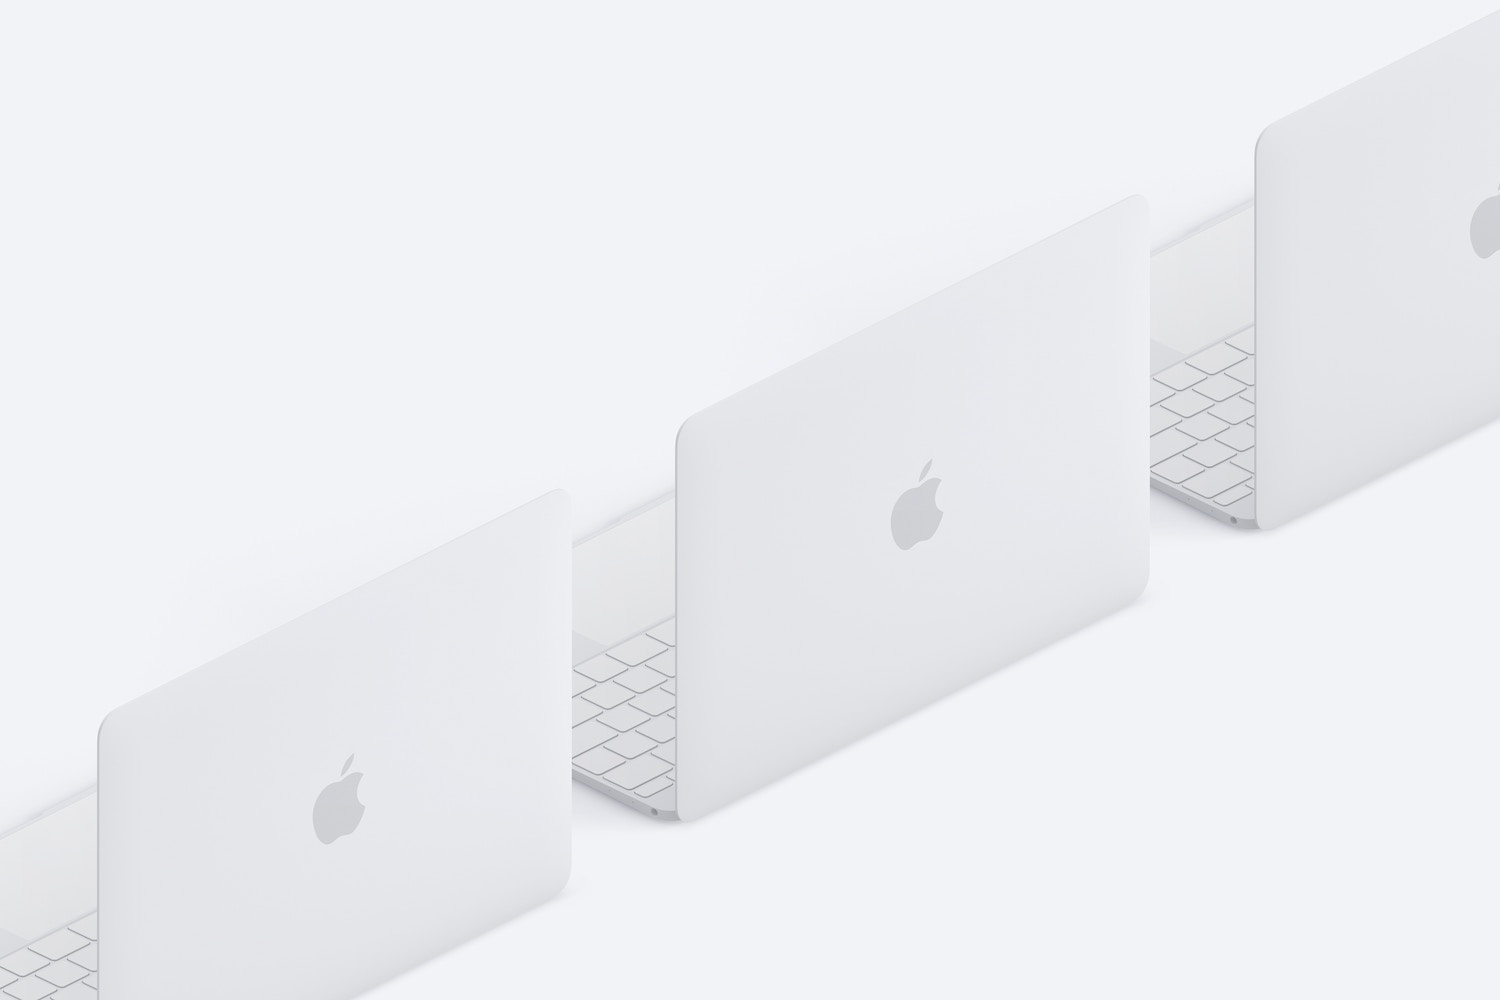 Clay MacBook Mockup, Isometric Back Right View (3) by Original Mockups on Original Mockups